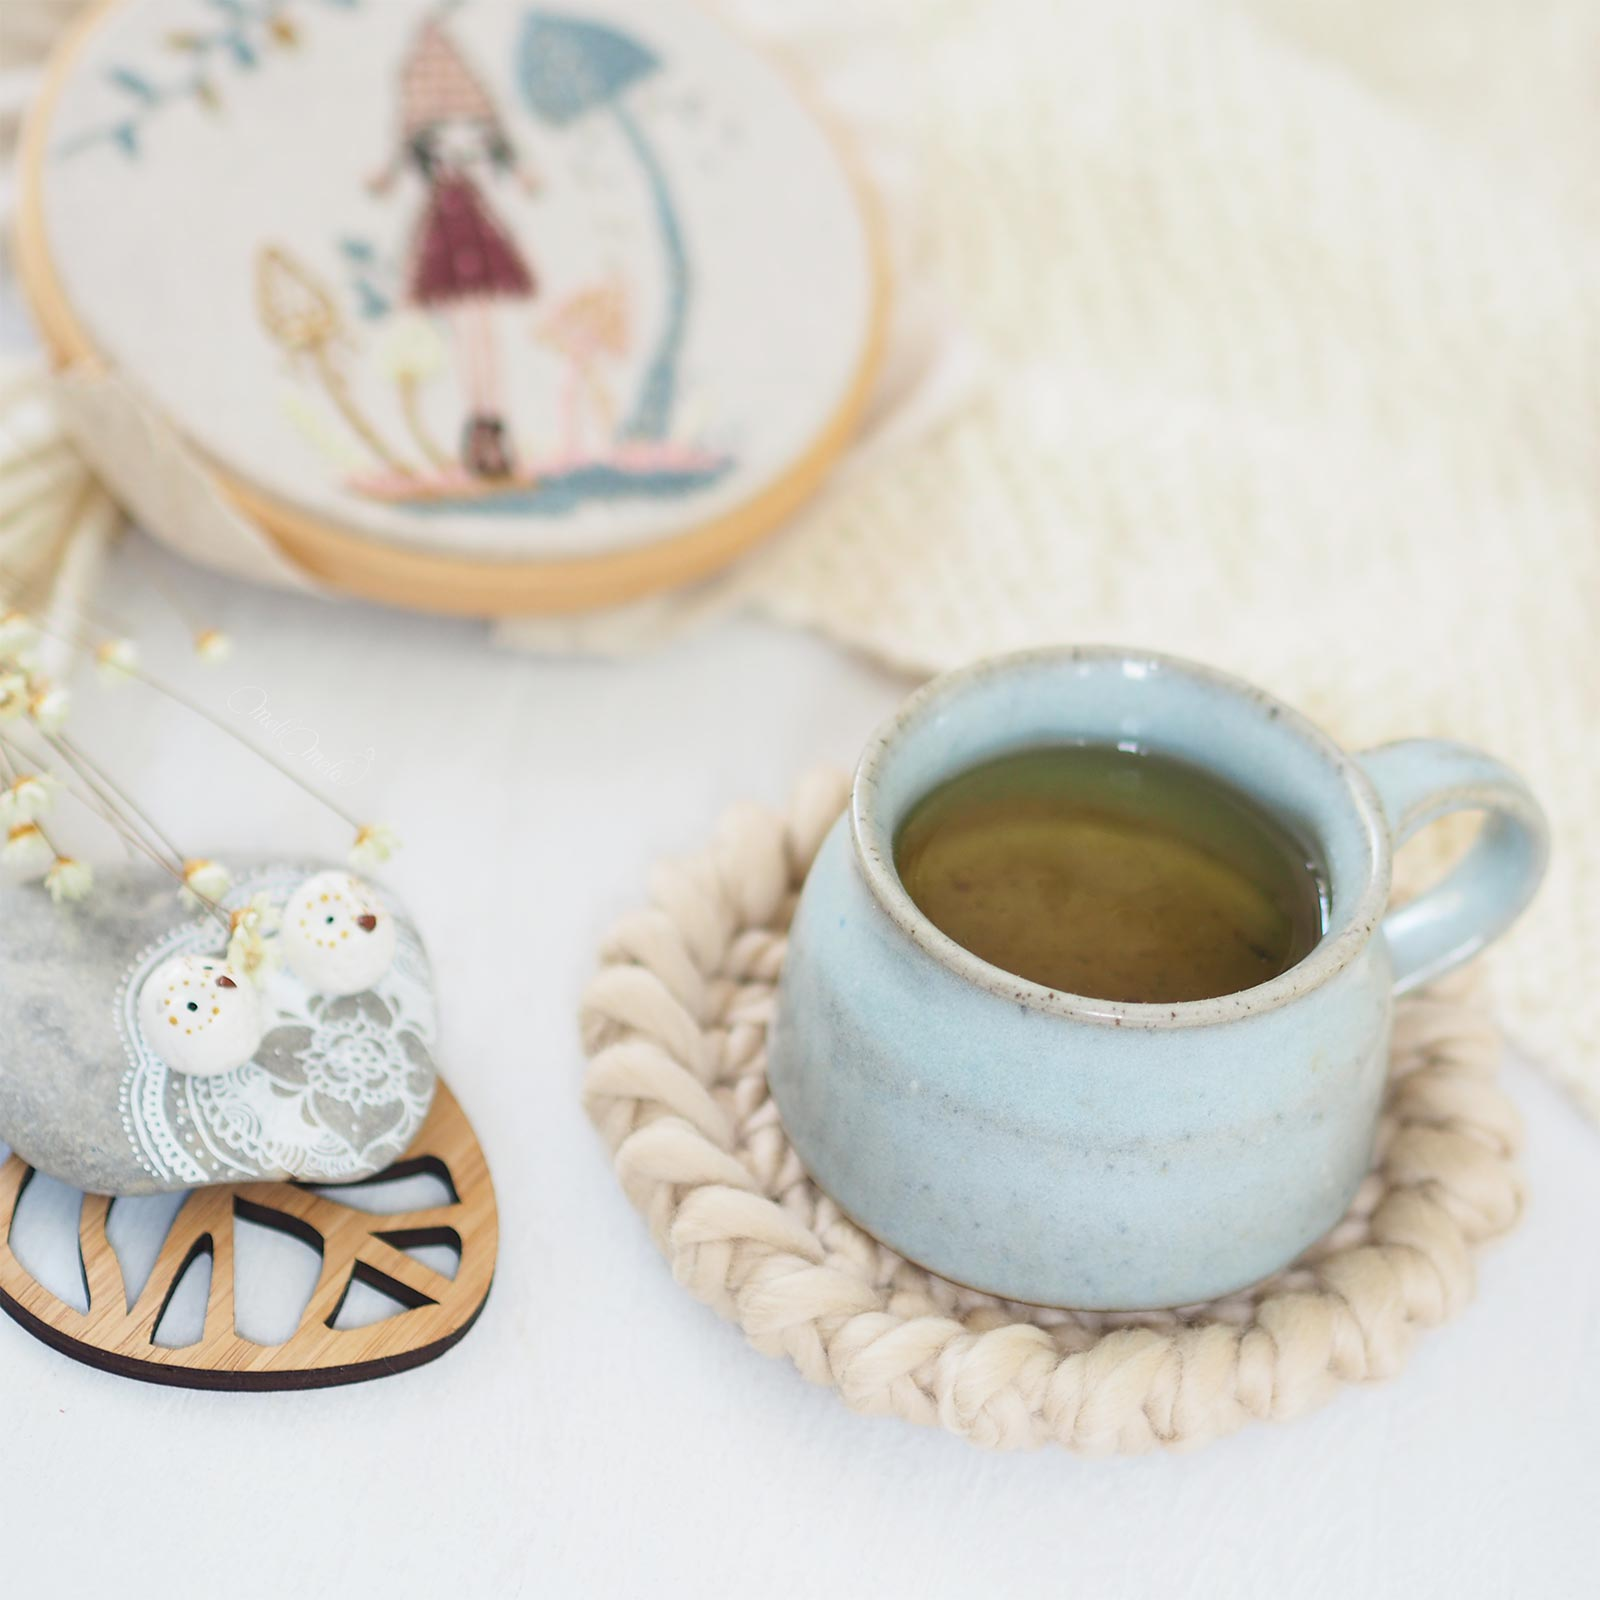 deco-cosy-laine-peruvienne-thewool-weareknitters-teatime-laboutiquedemelimelo